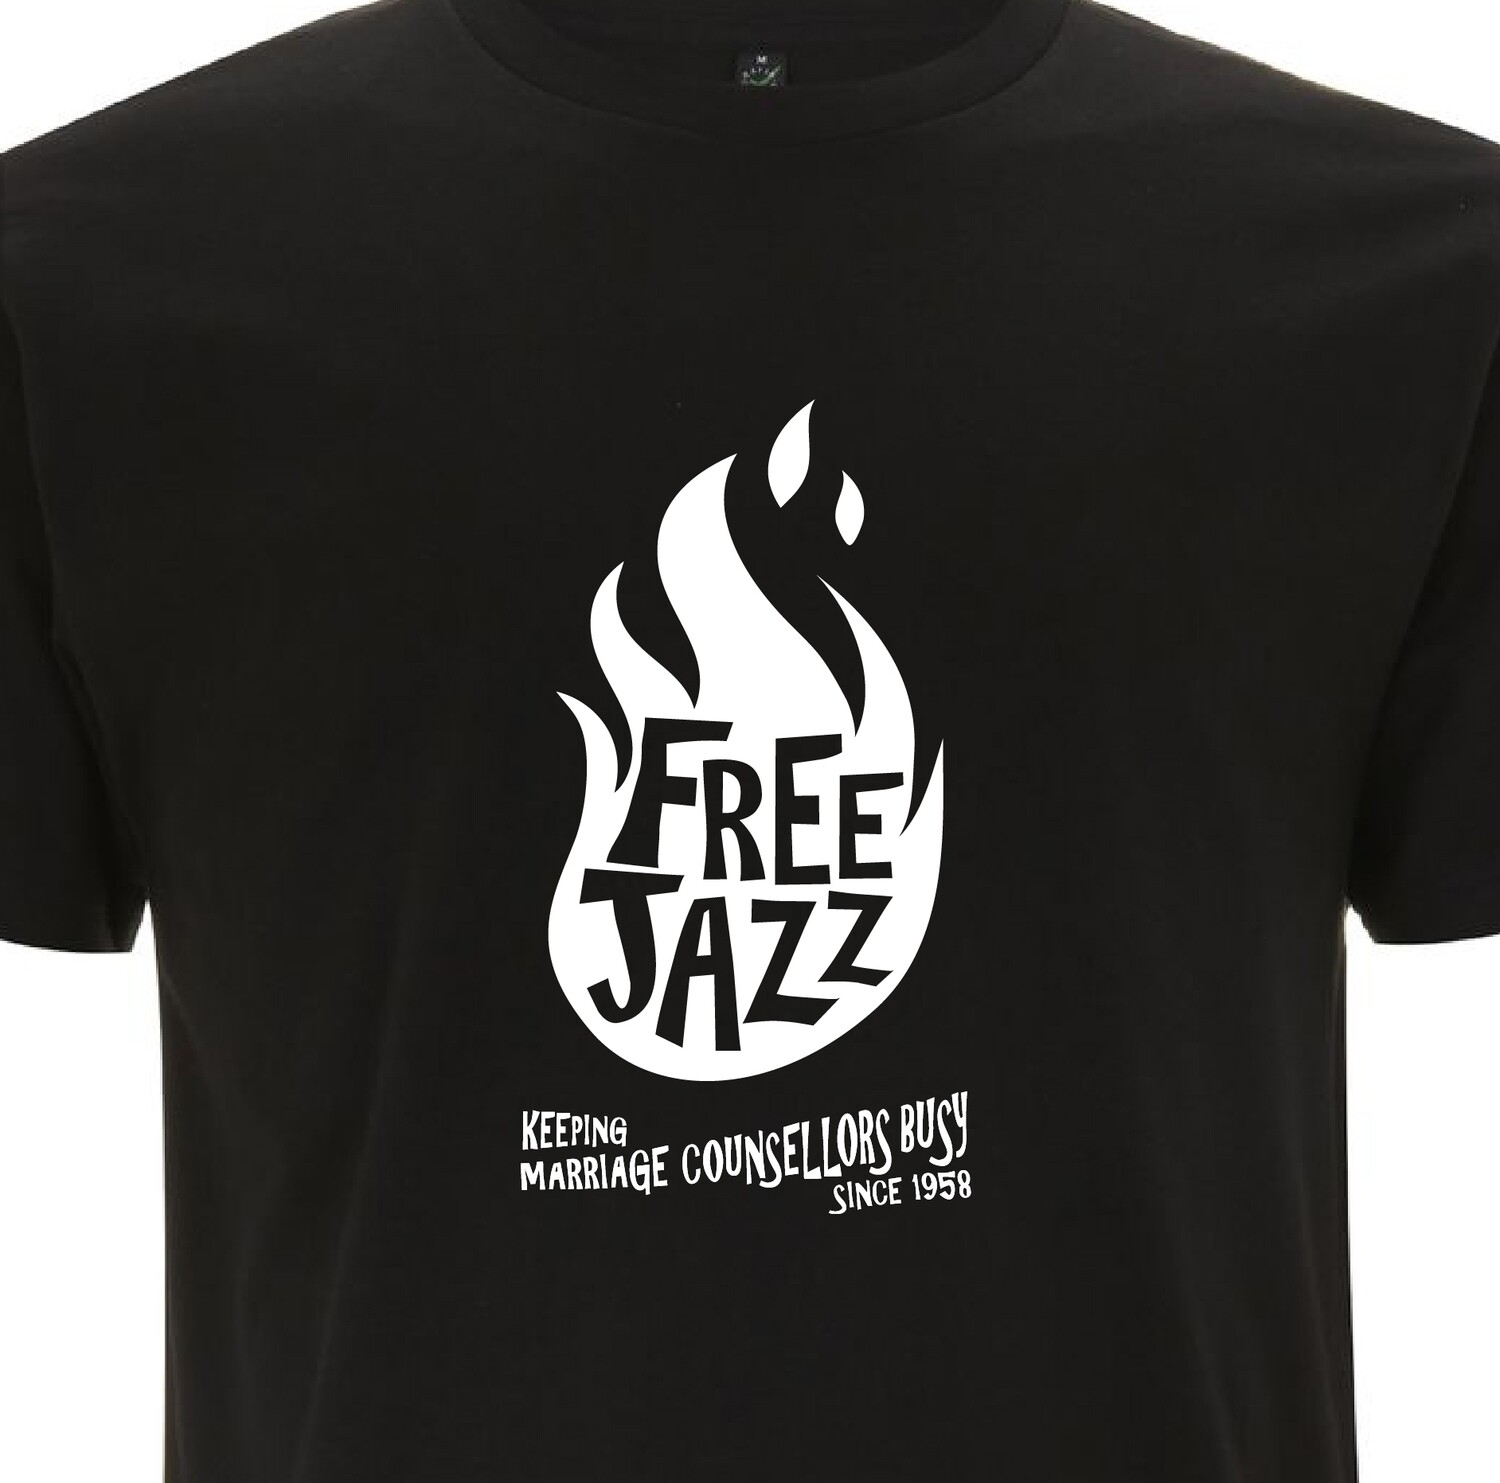 FREE JAZZ Keeping Marriage Counsellors Busy Since 1958 Organic T-shirt.